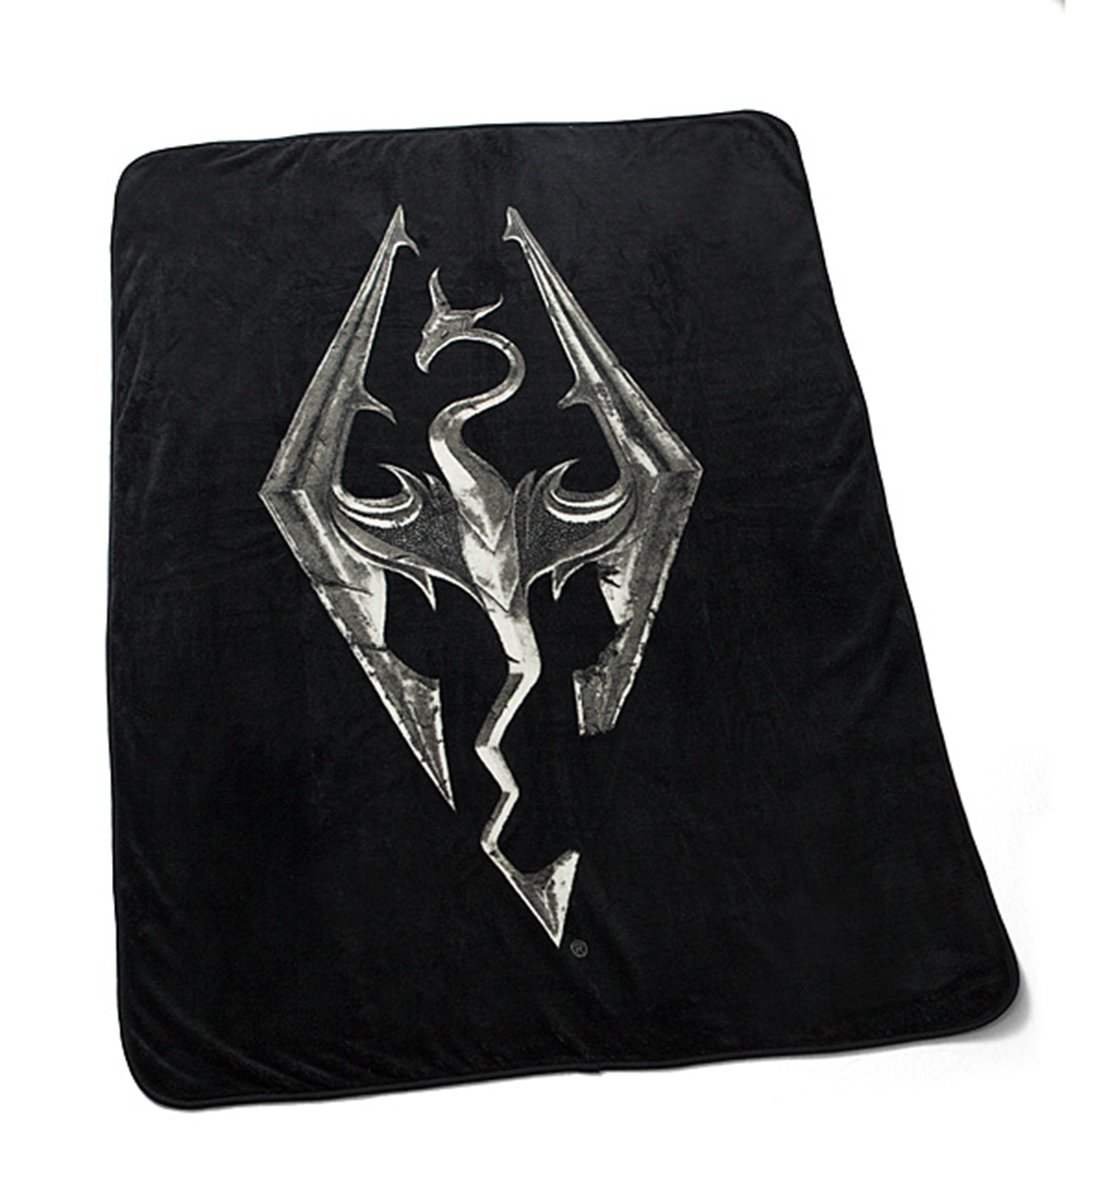 "Skyrim Logo Throw 40 x 60"" Fleece Blanket Standard"